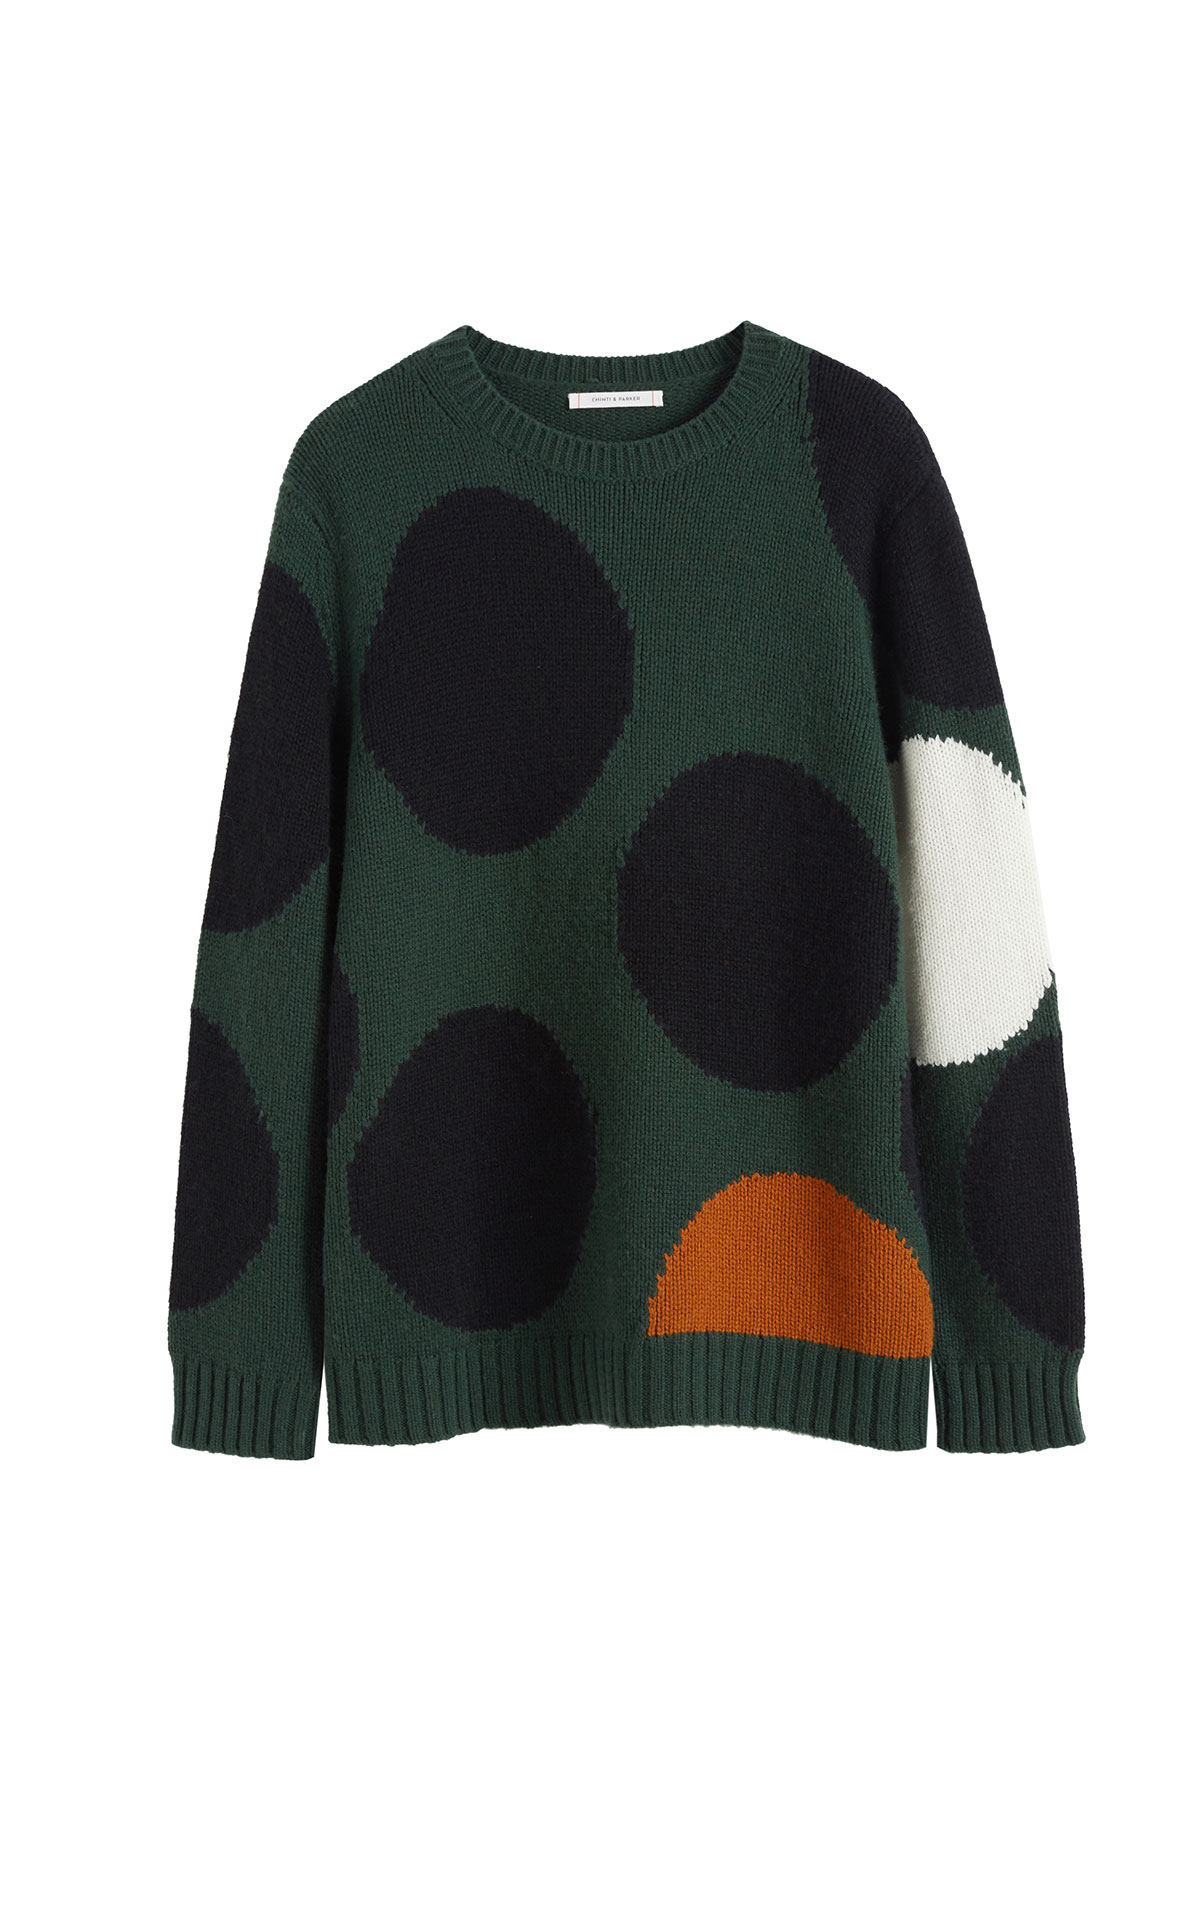 Chinti & Parker Green dot sweater from Bicester Village